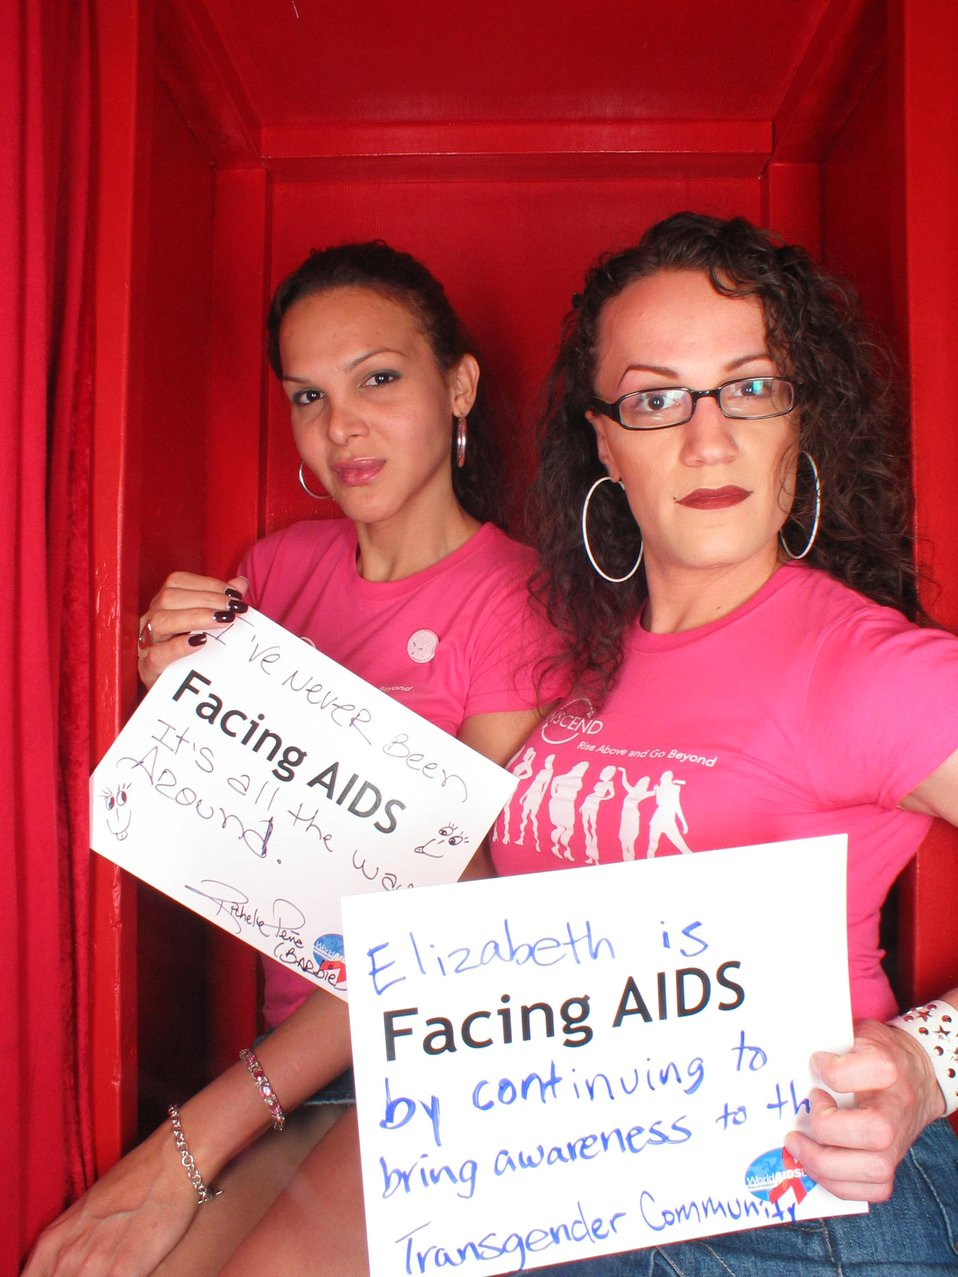 Facing AIDS by continuing to bring awareness to the transgender community.